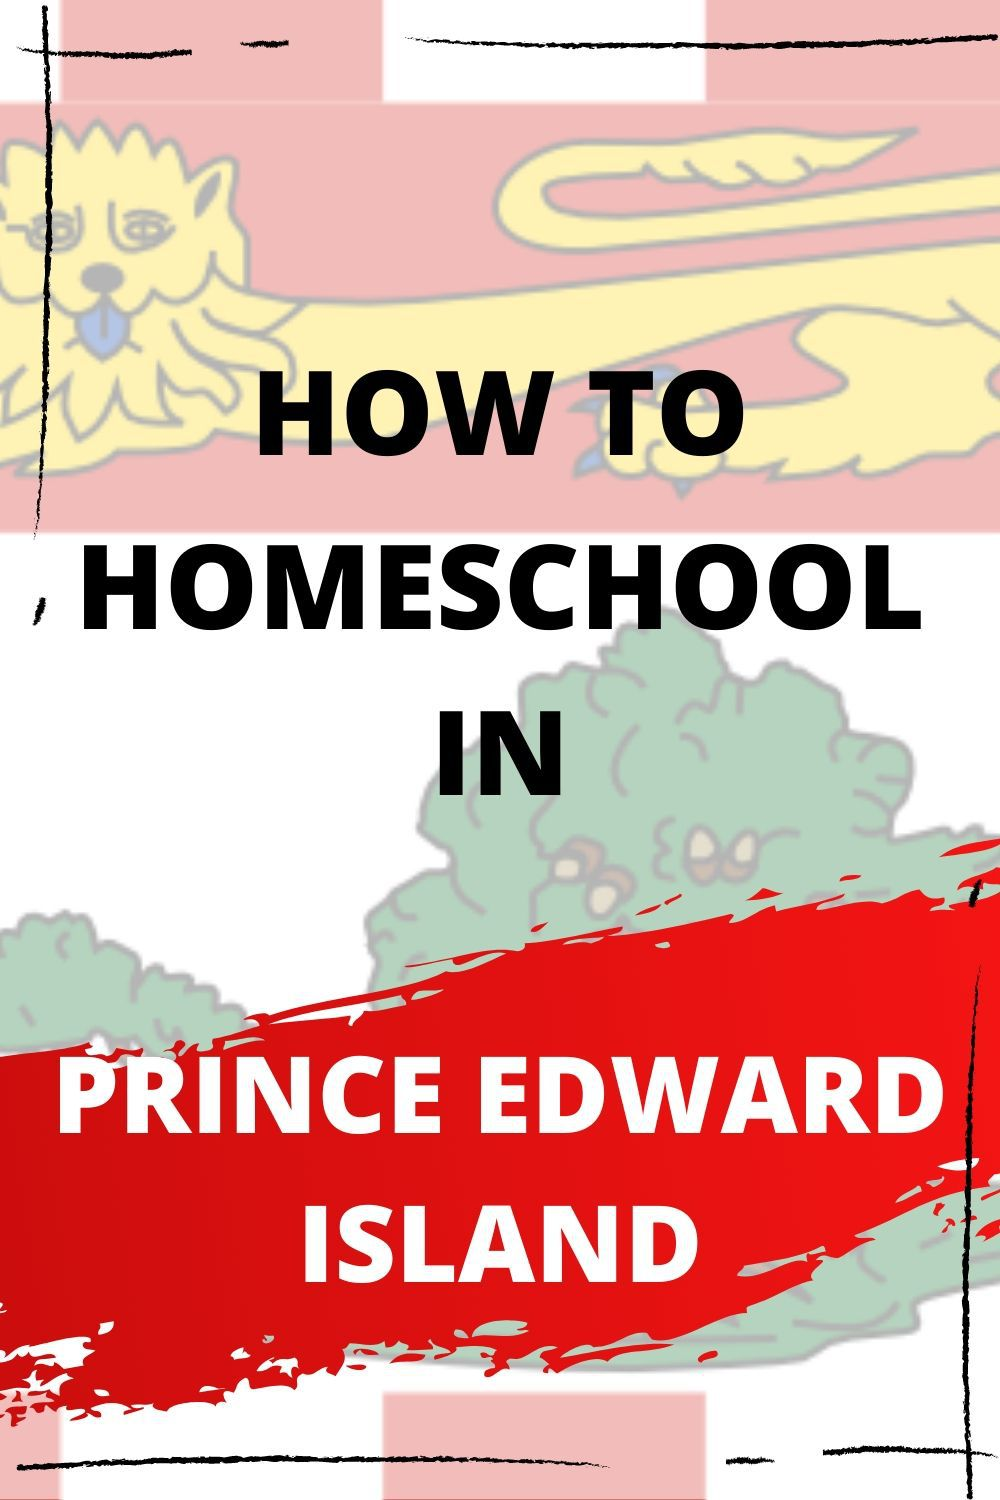 The Flag of PEI With the text How to Homeschool in Prince Edward Island: How to get started overlaid